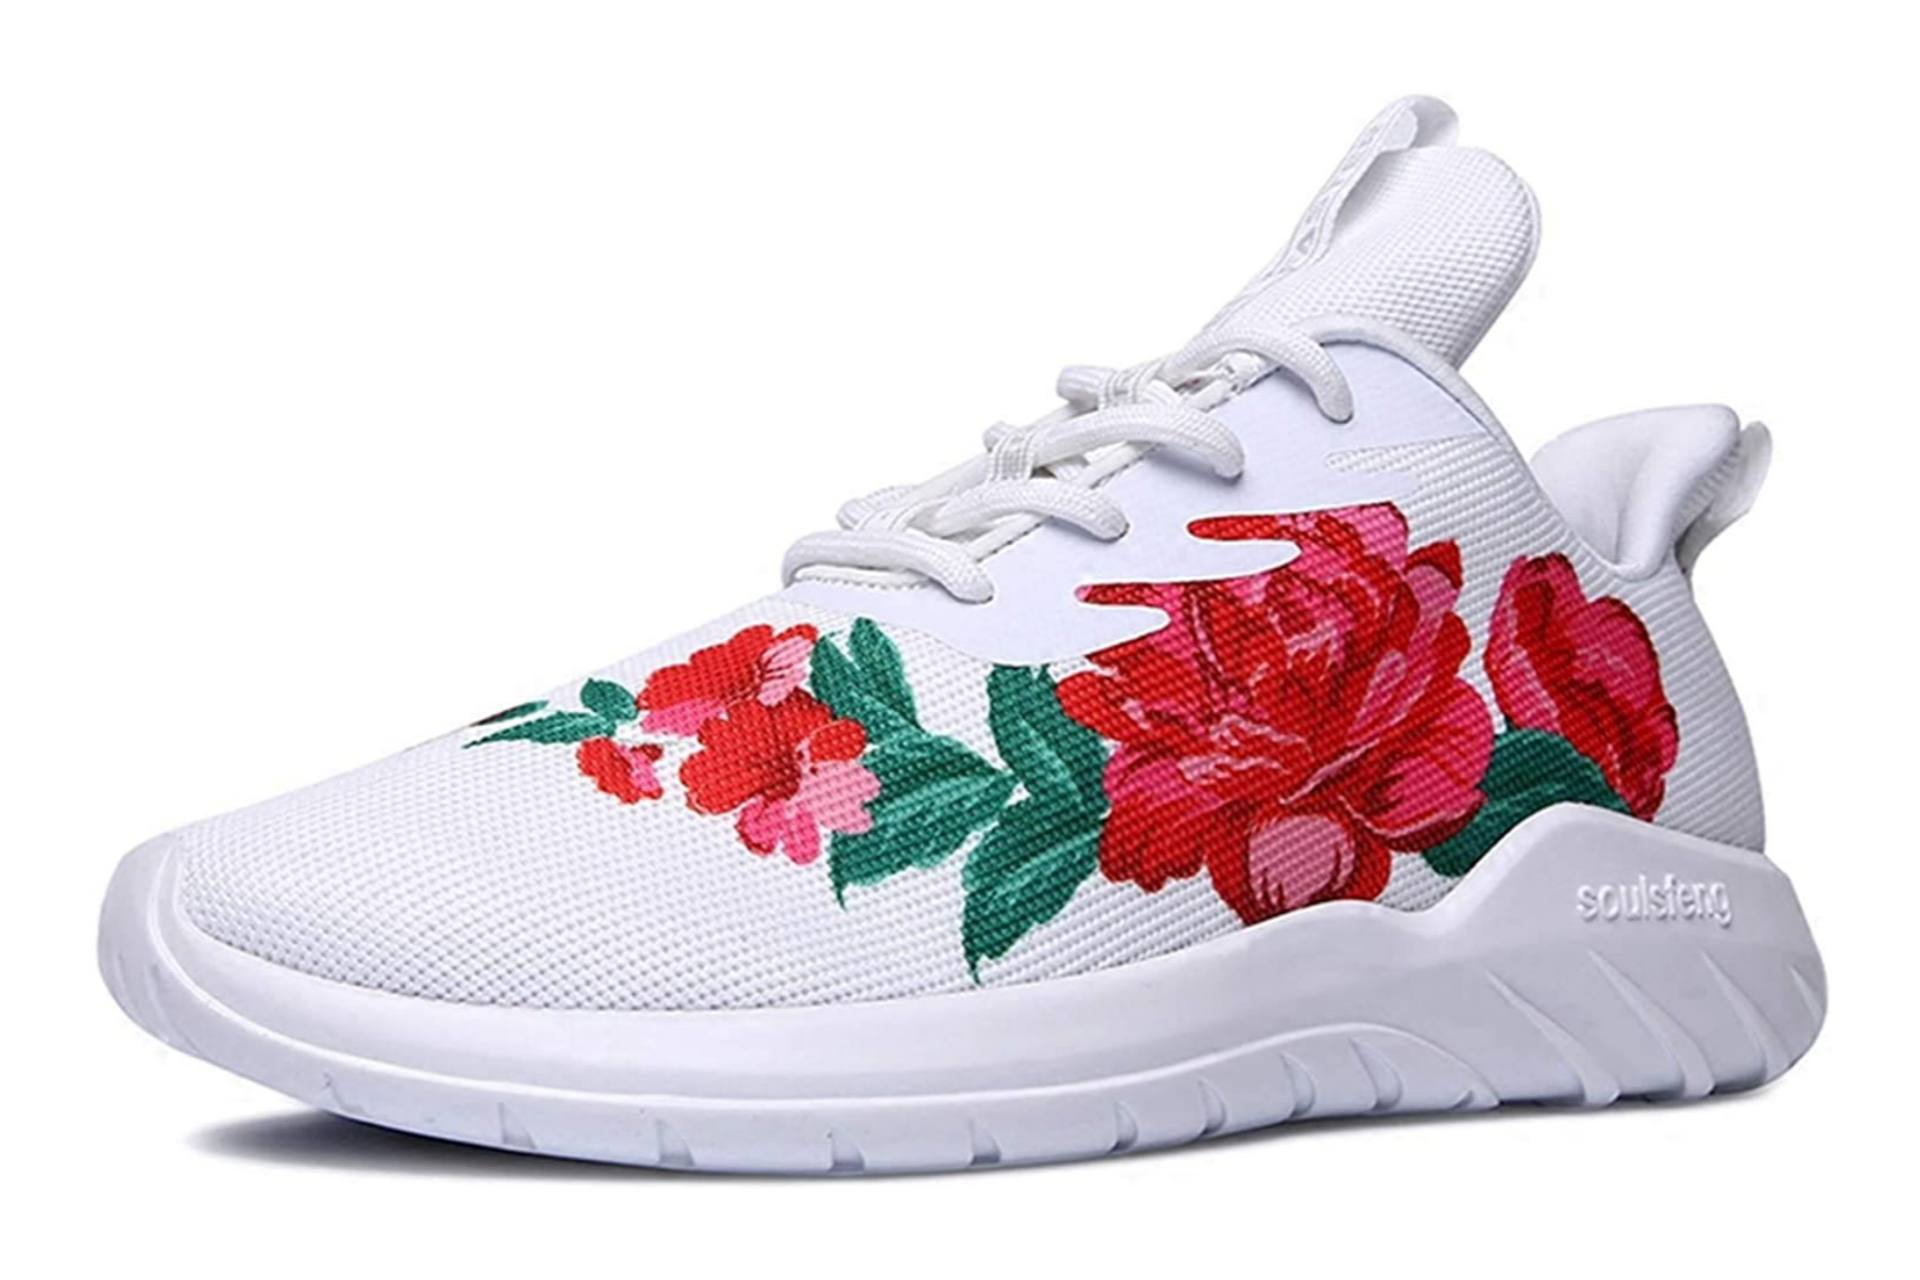 Stylish shoes for women